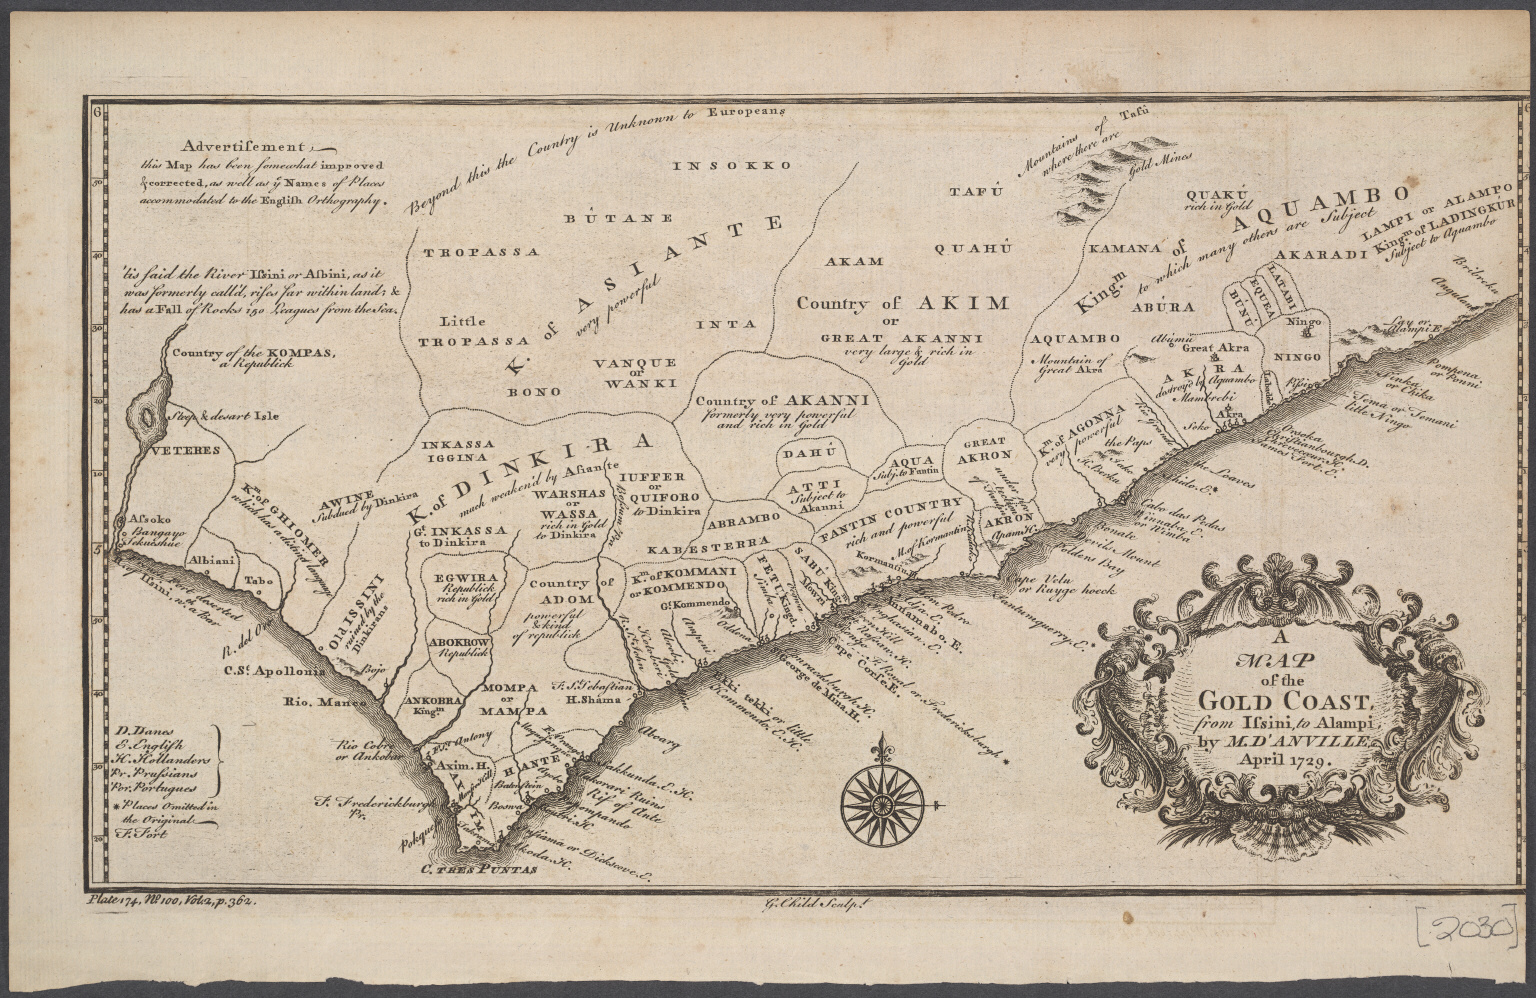 A Map Of The Gold Coast From Issini To Alampi By Mr D Amville April